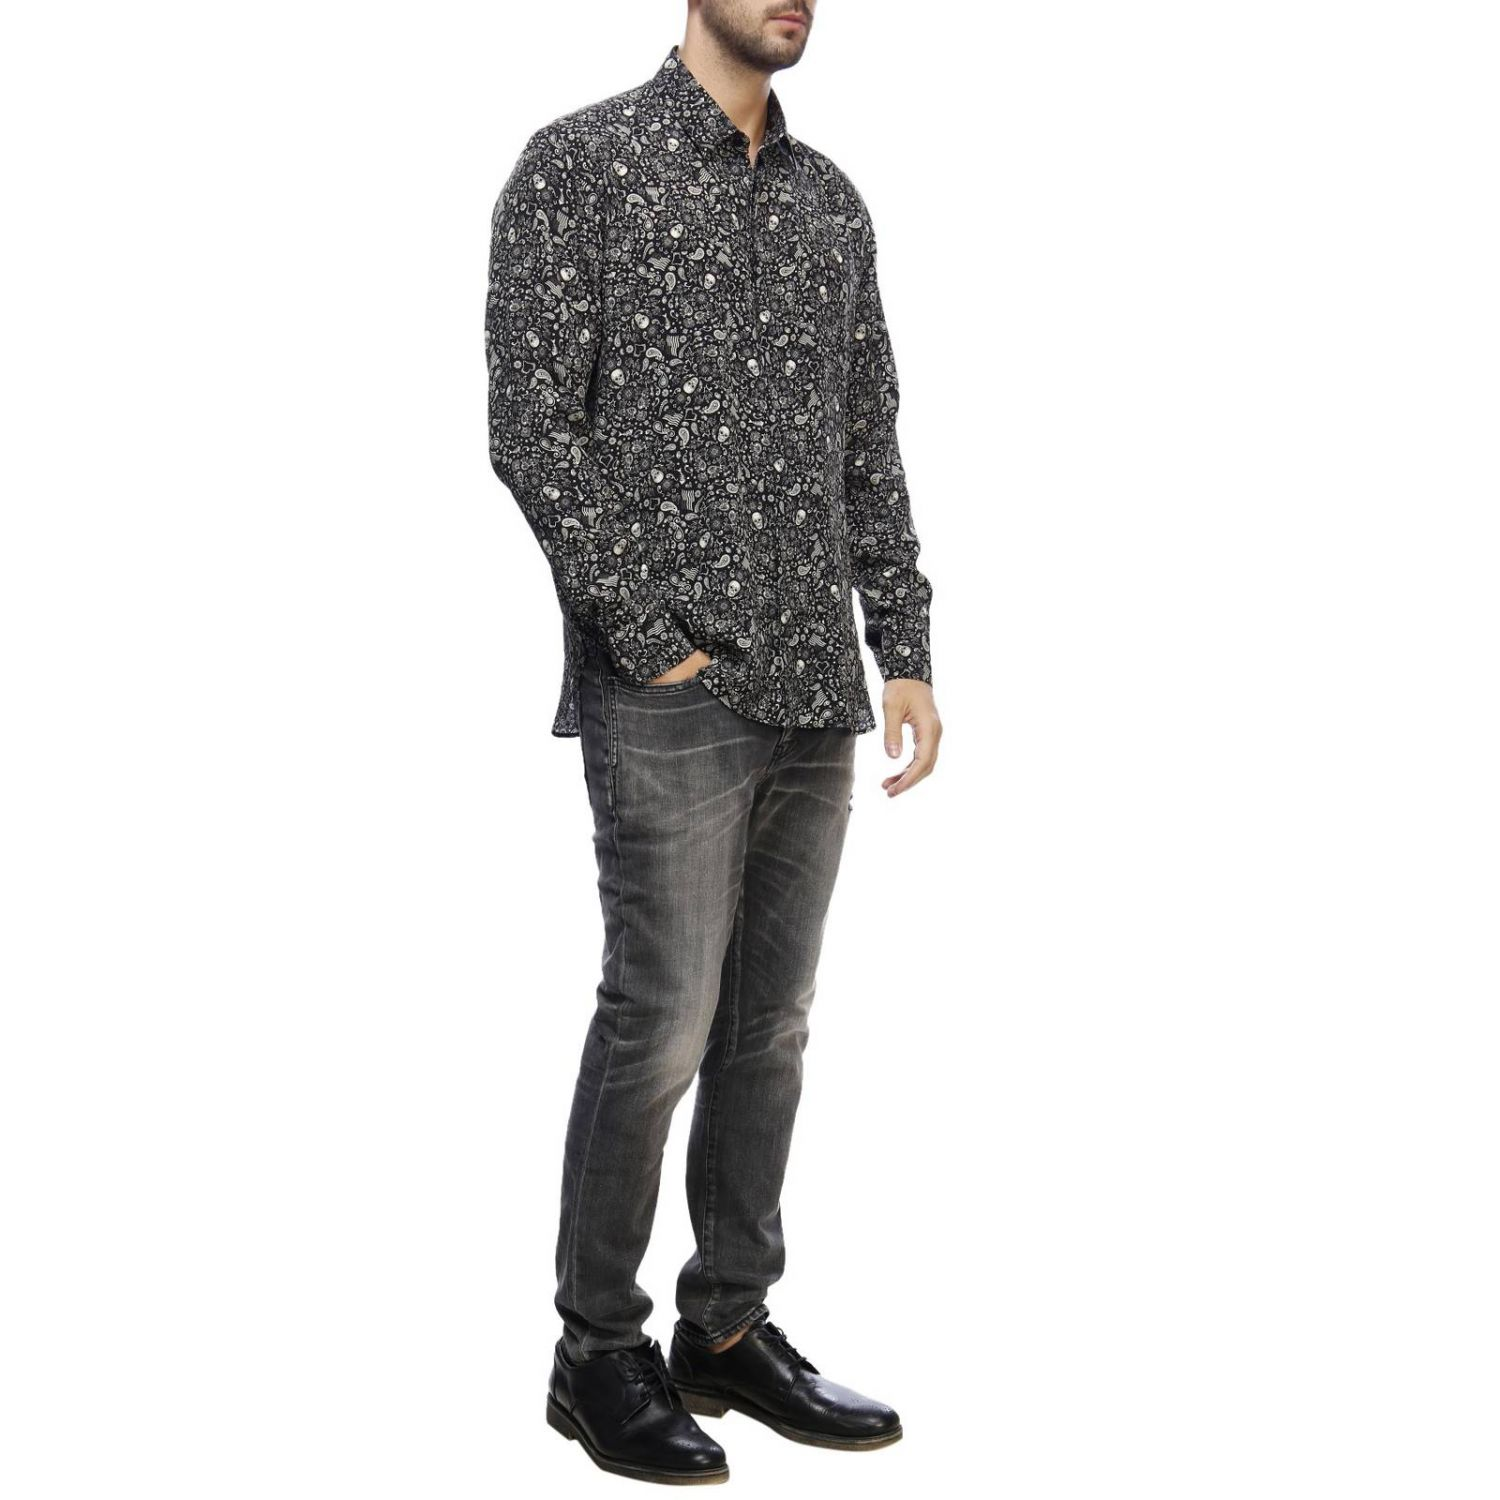 Camicia casual con stampa teschi all over nero 4